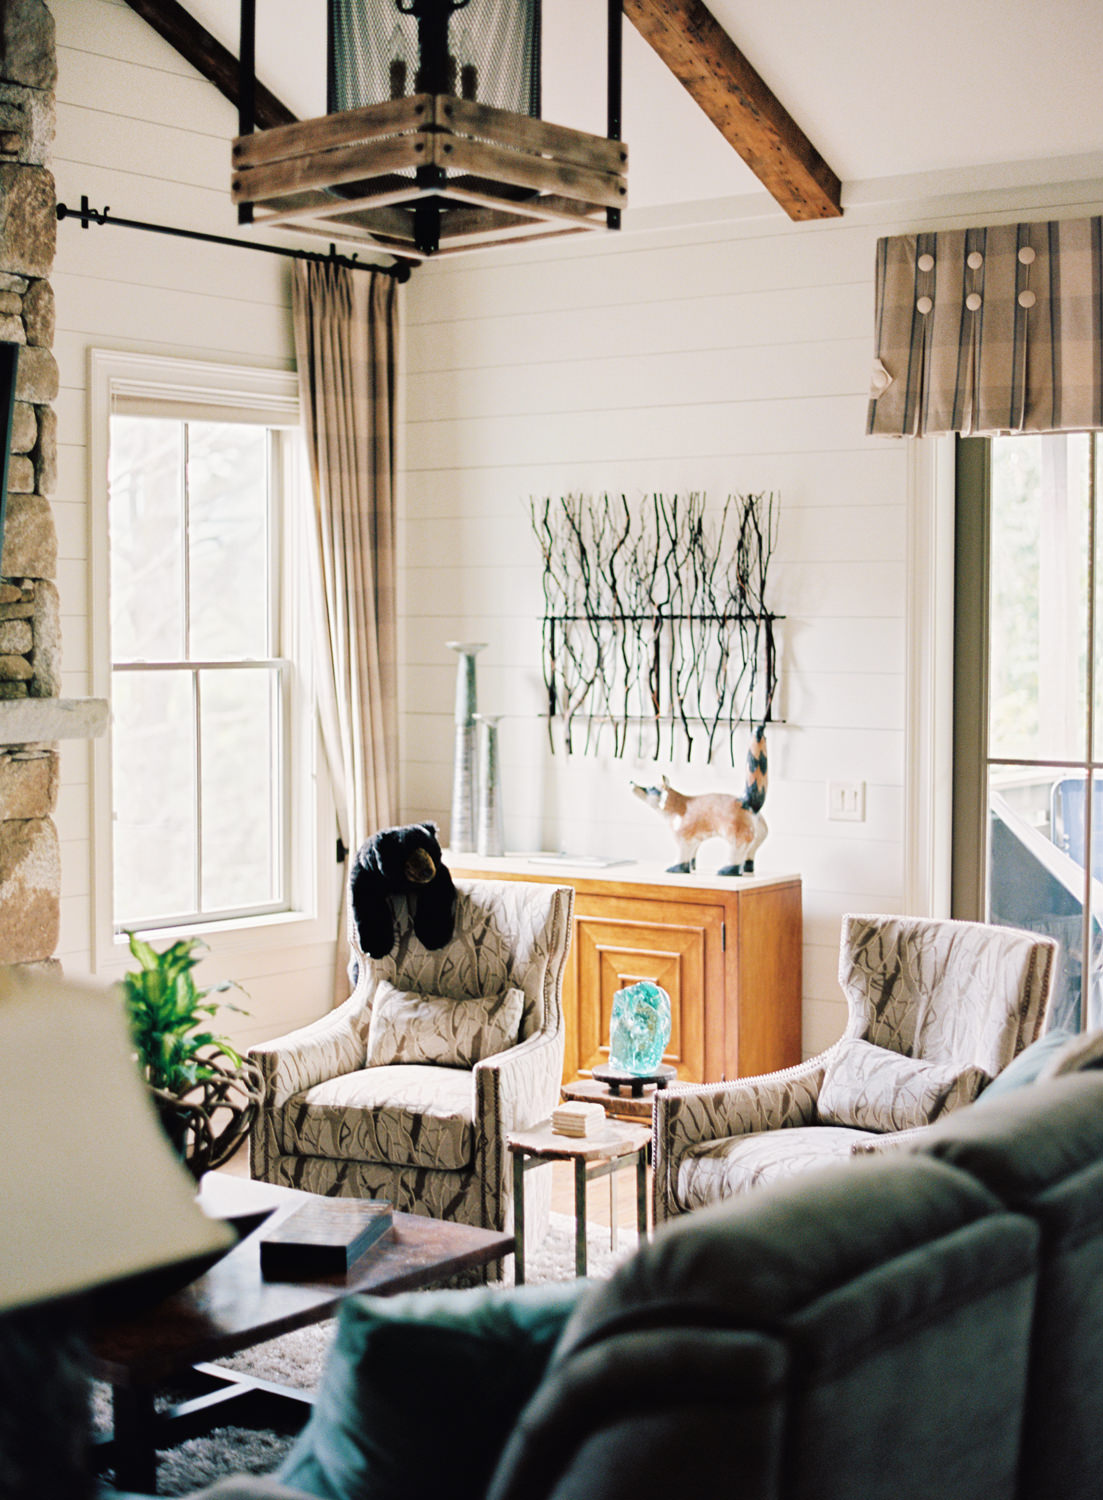 cottrell_photography_interiors-009